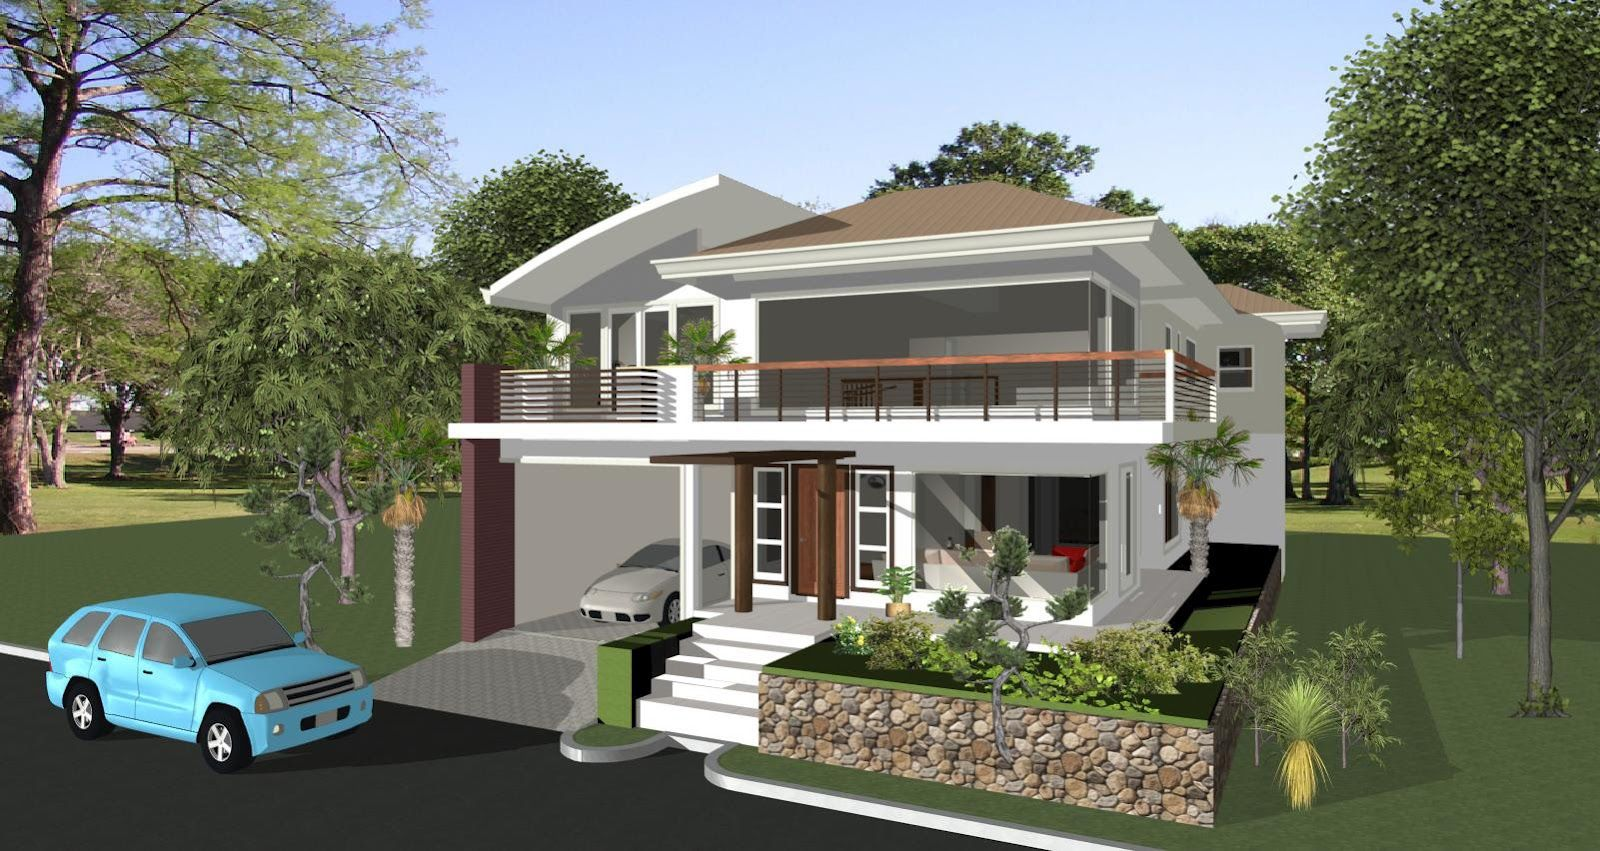 Dream home designs erecre group realty design and How to make your dream house